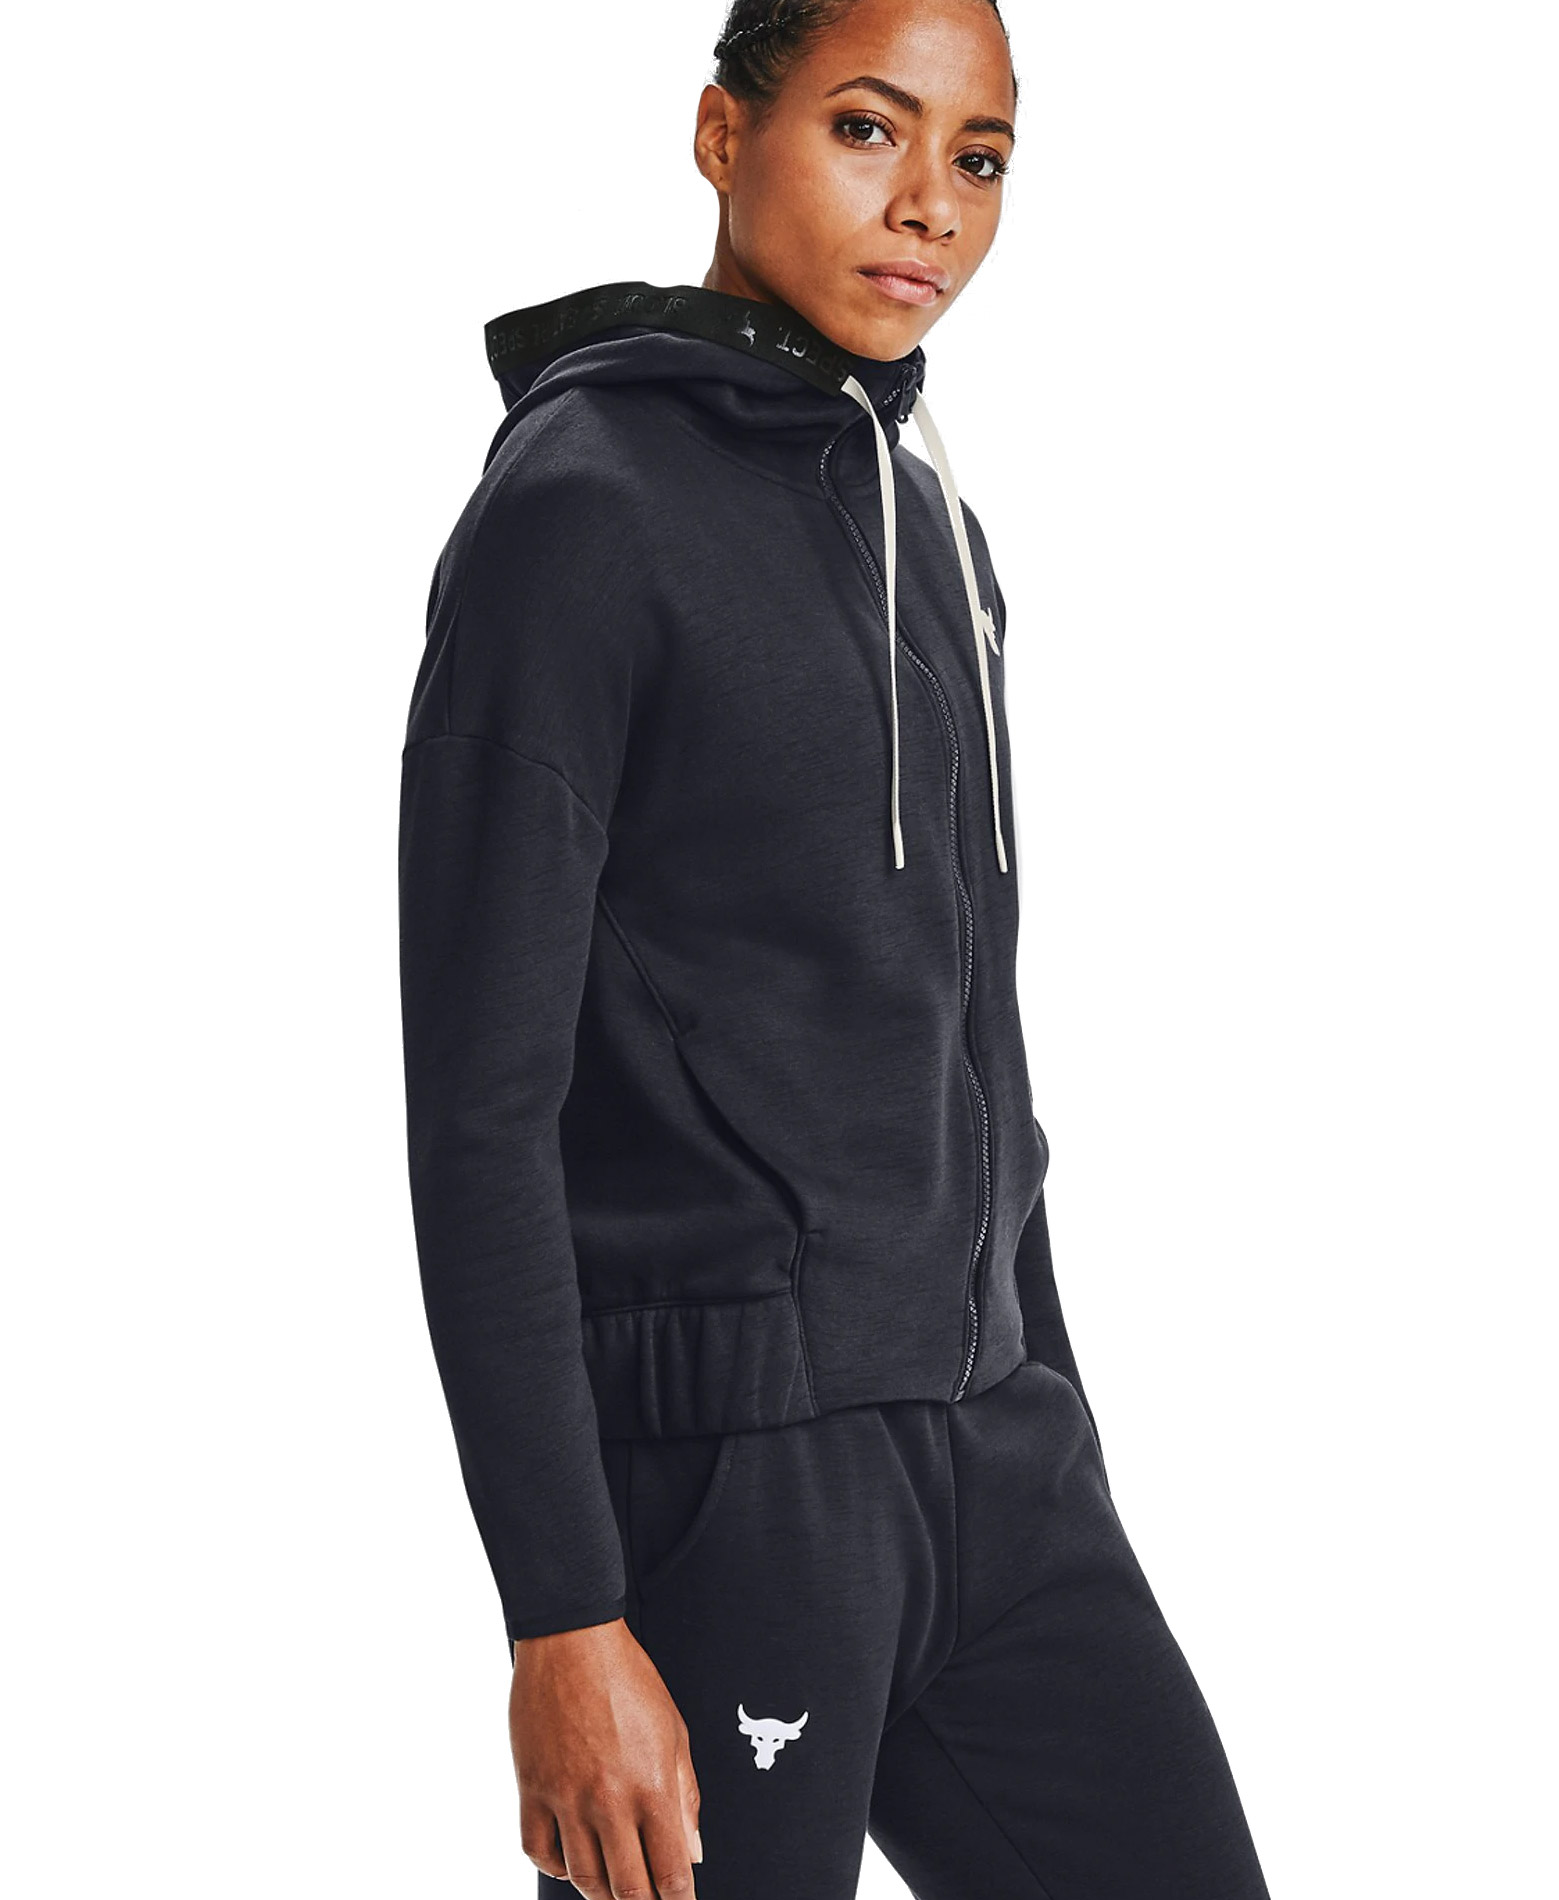 UNDER ARMOUR PROJECT ROCK CC FLEECE FZ SWEAT JACKET 1356958-001 Μαύρο